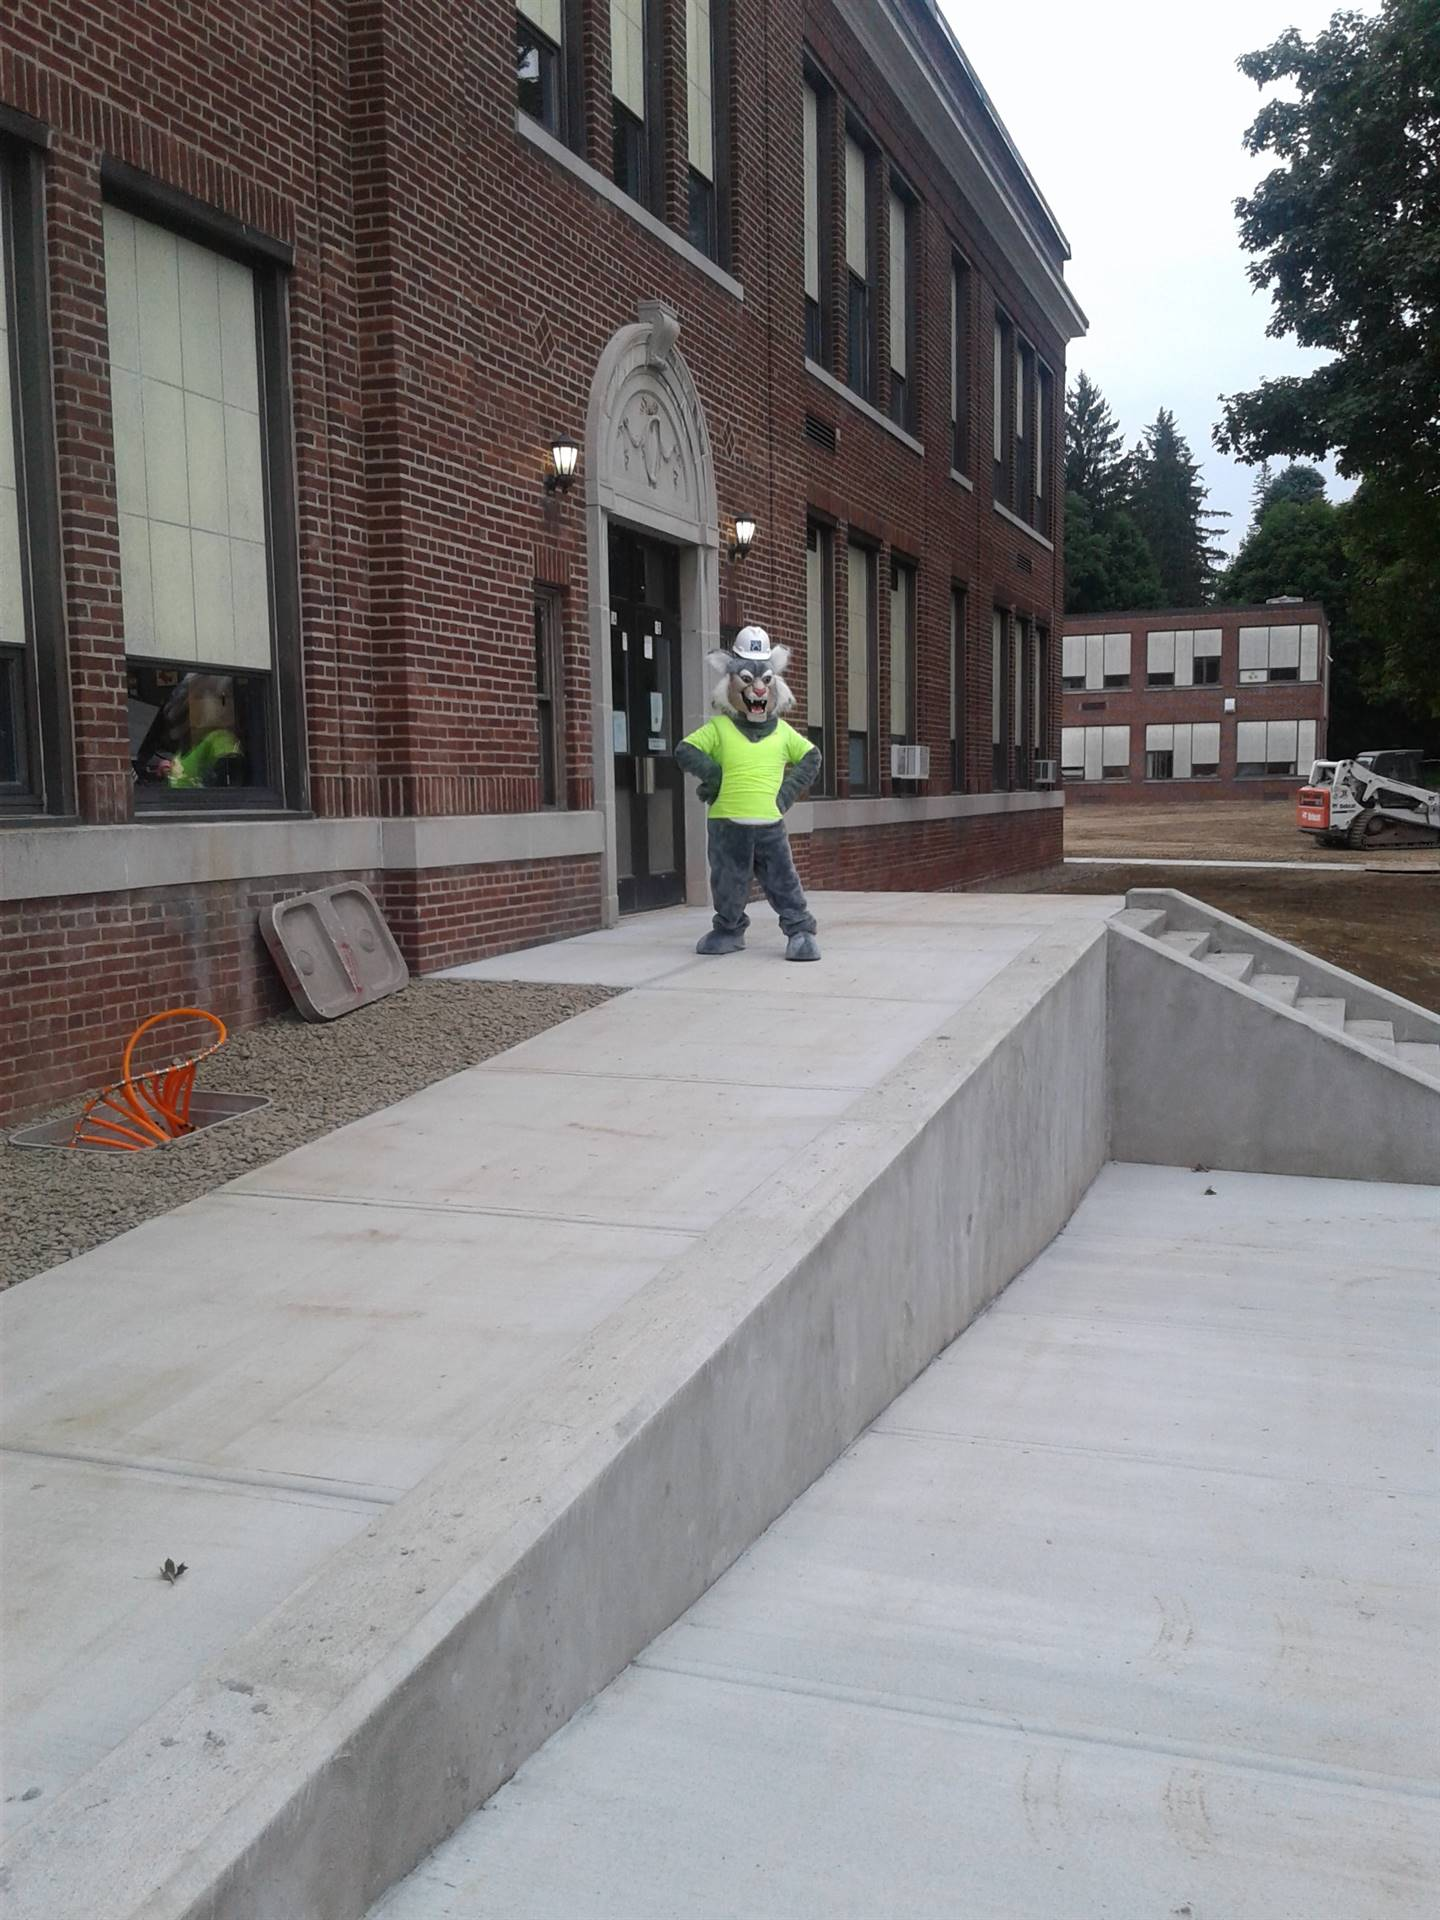 Week 9 - Capital Project - HS  - Felix checking out the new Handicap Ramp!